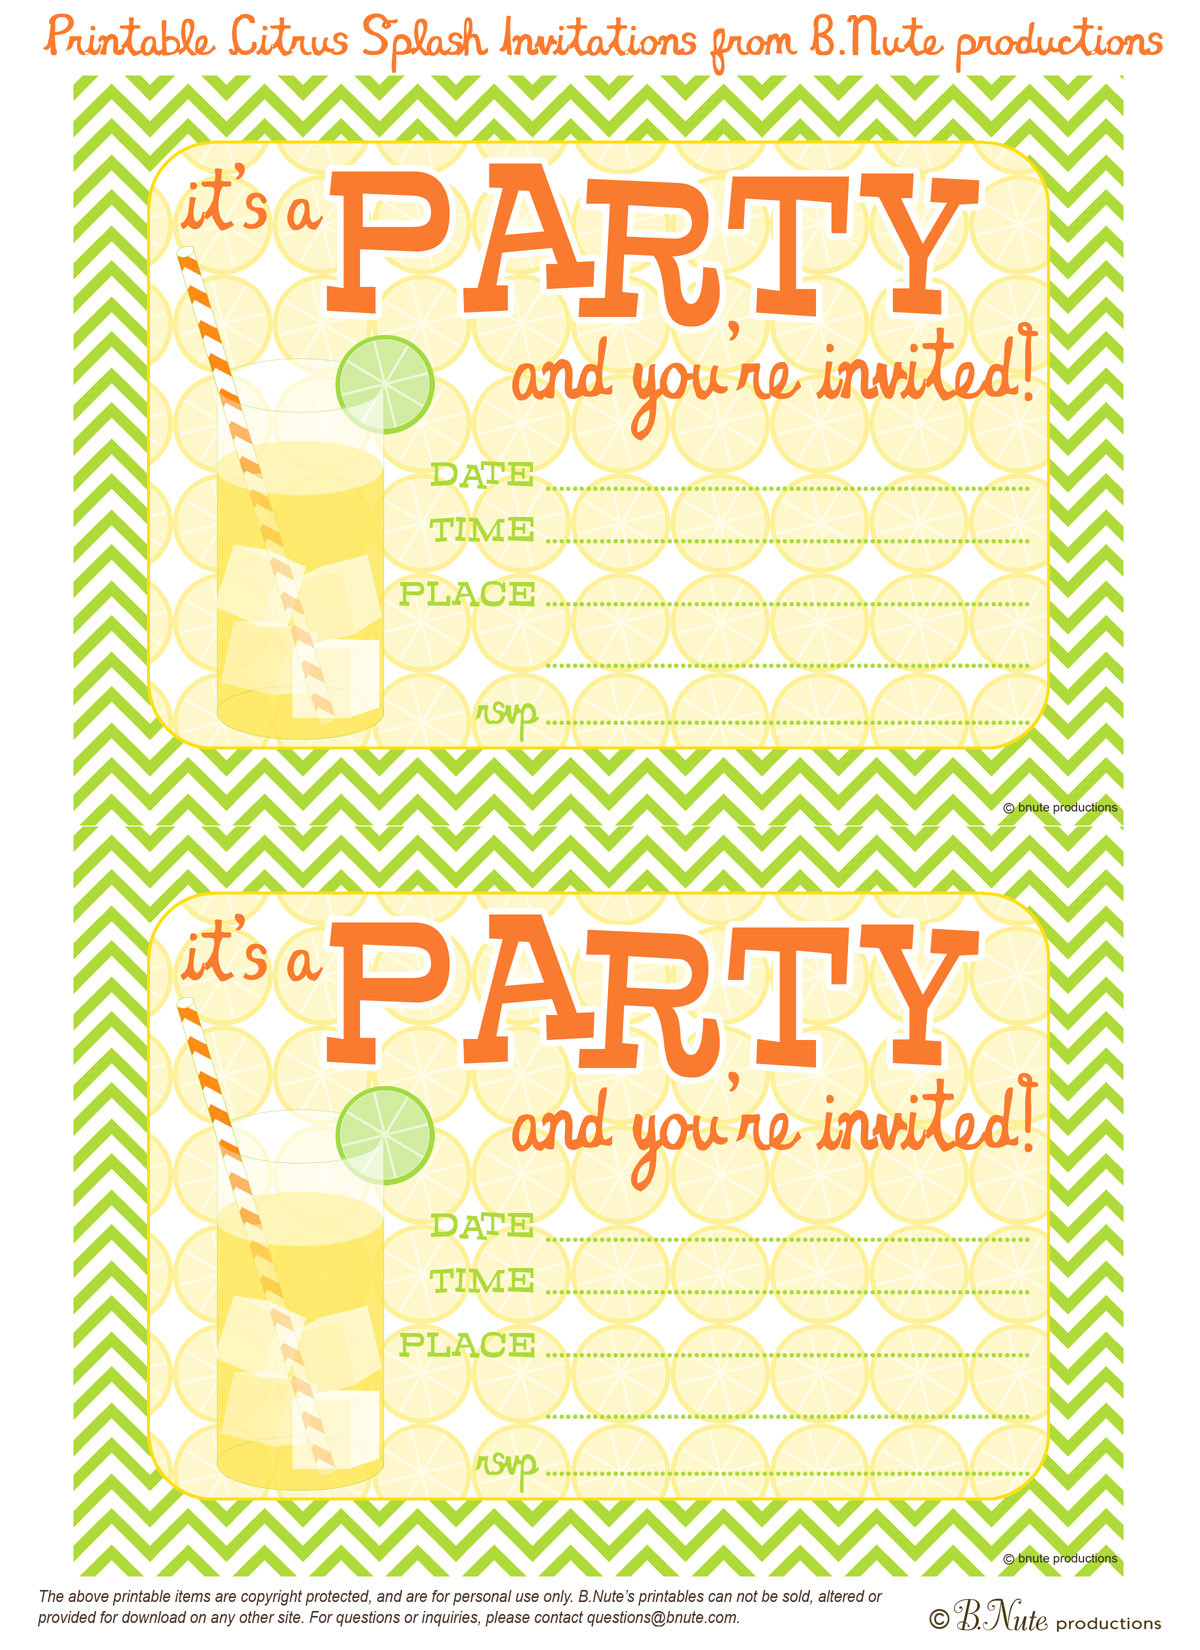 Best ideas about Printable Birthday Invitations . Save or Pin bnute productions Free Printable Citrus Splash Invitations Now.